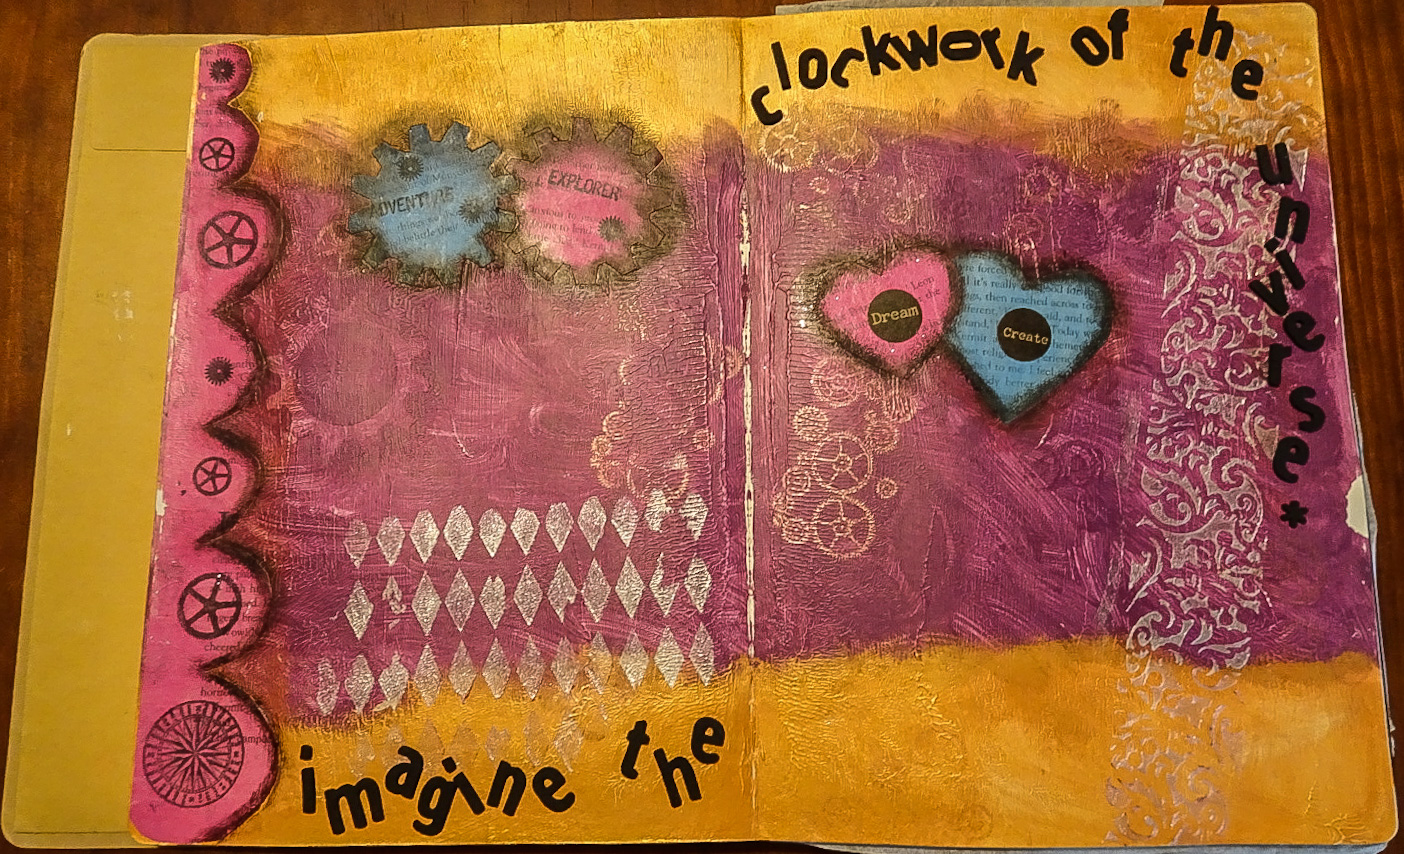 Art Journal pt 1- Clockwork of the Universe